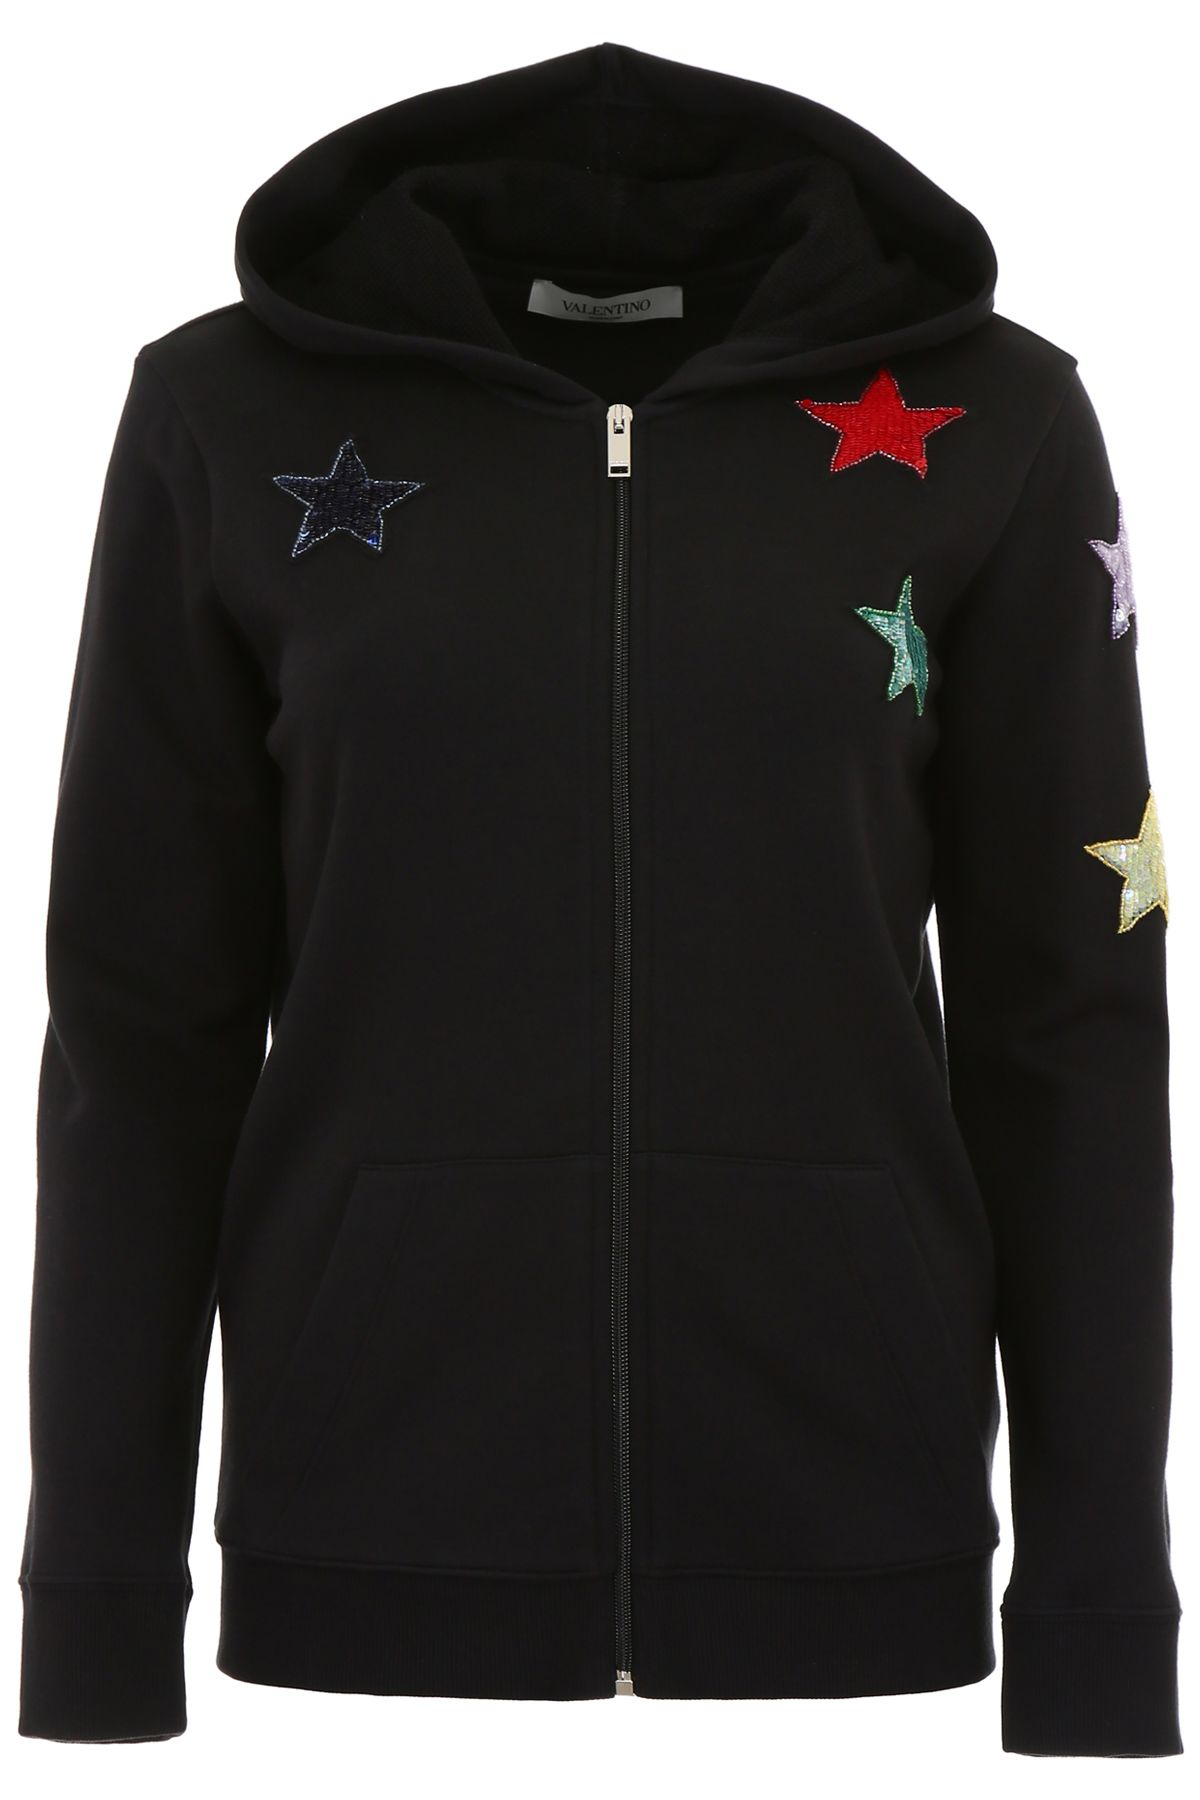 HOODIE WITH STAR PATCHES